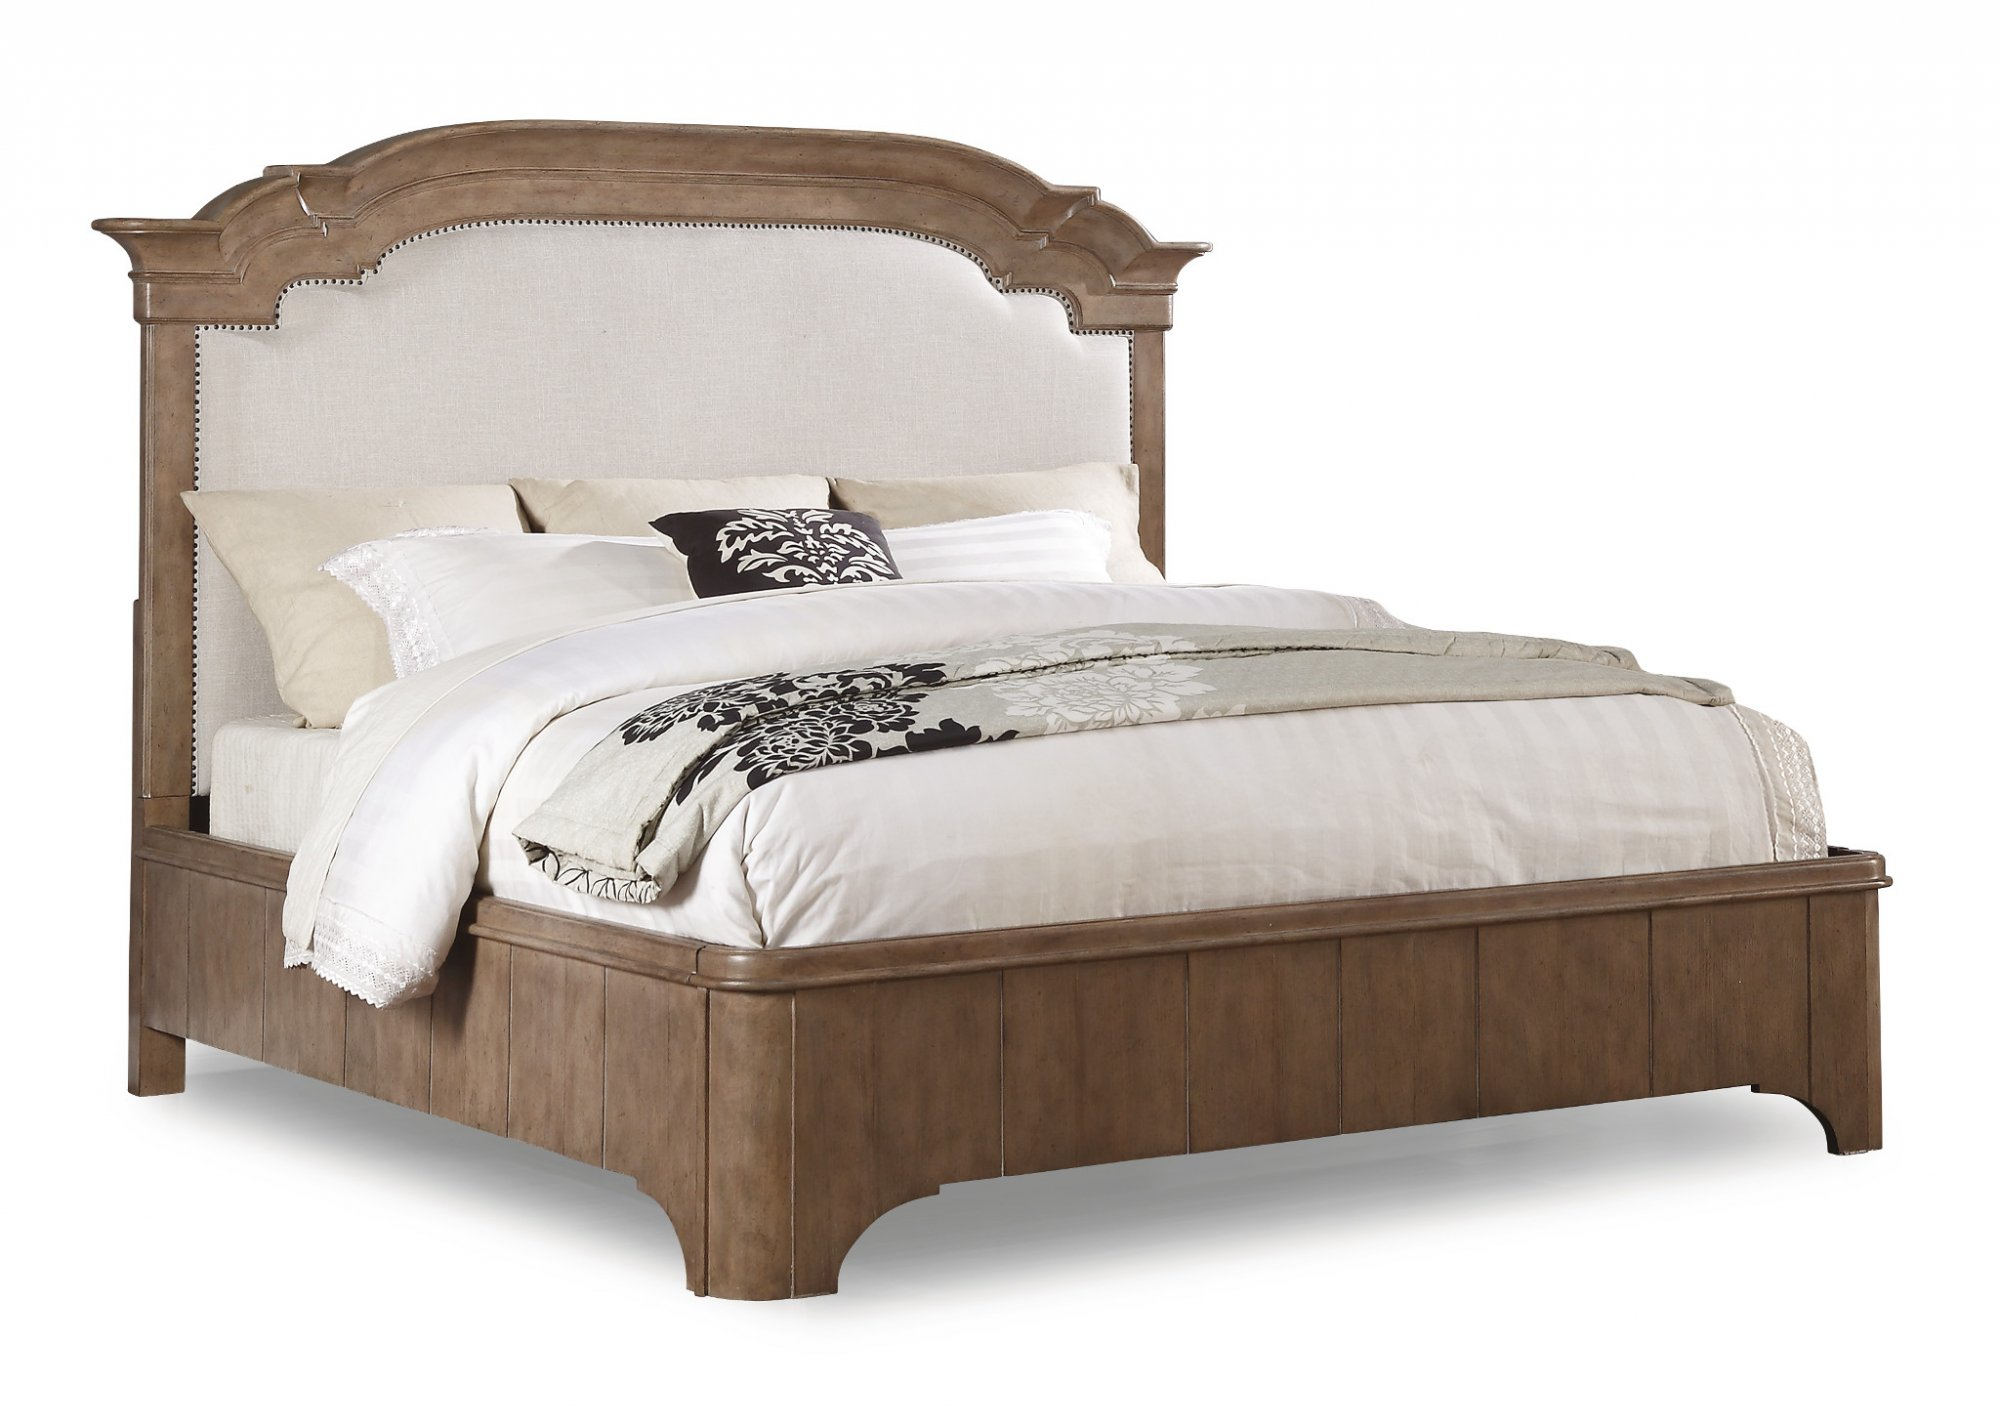 Model: W1046-90Q | Flexsteel Carmen  Queen Upholstered Bed